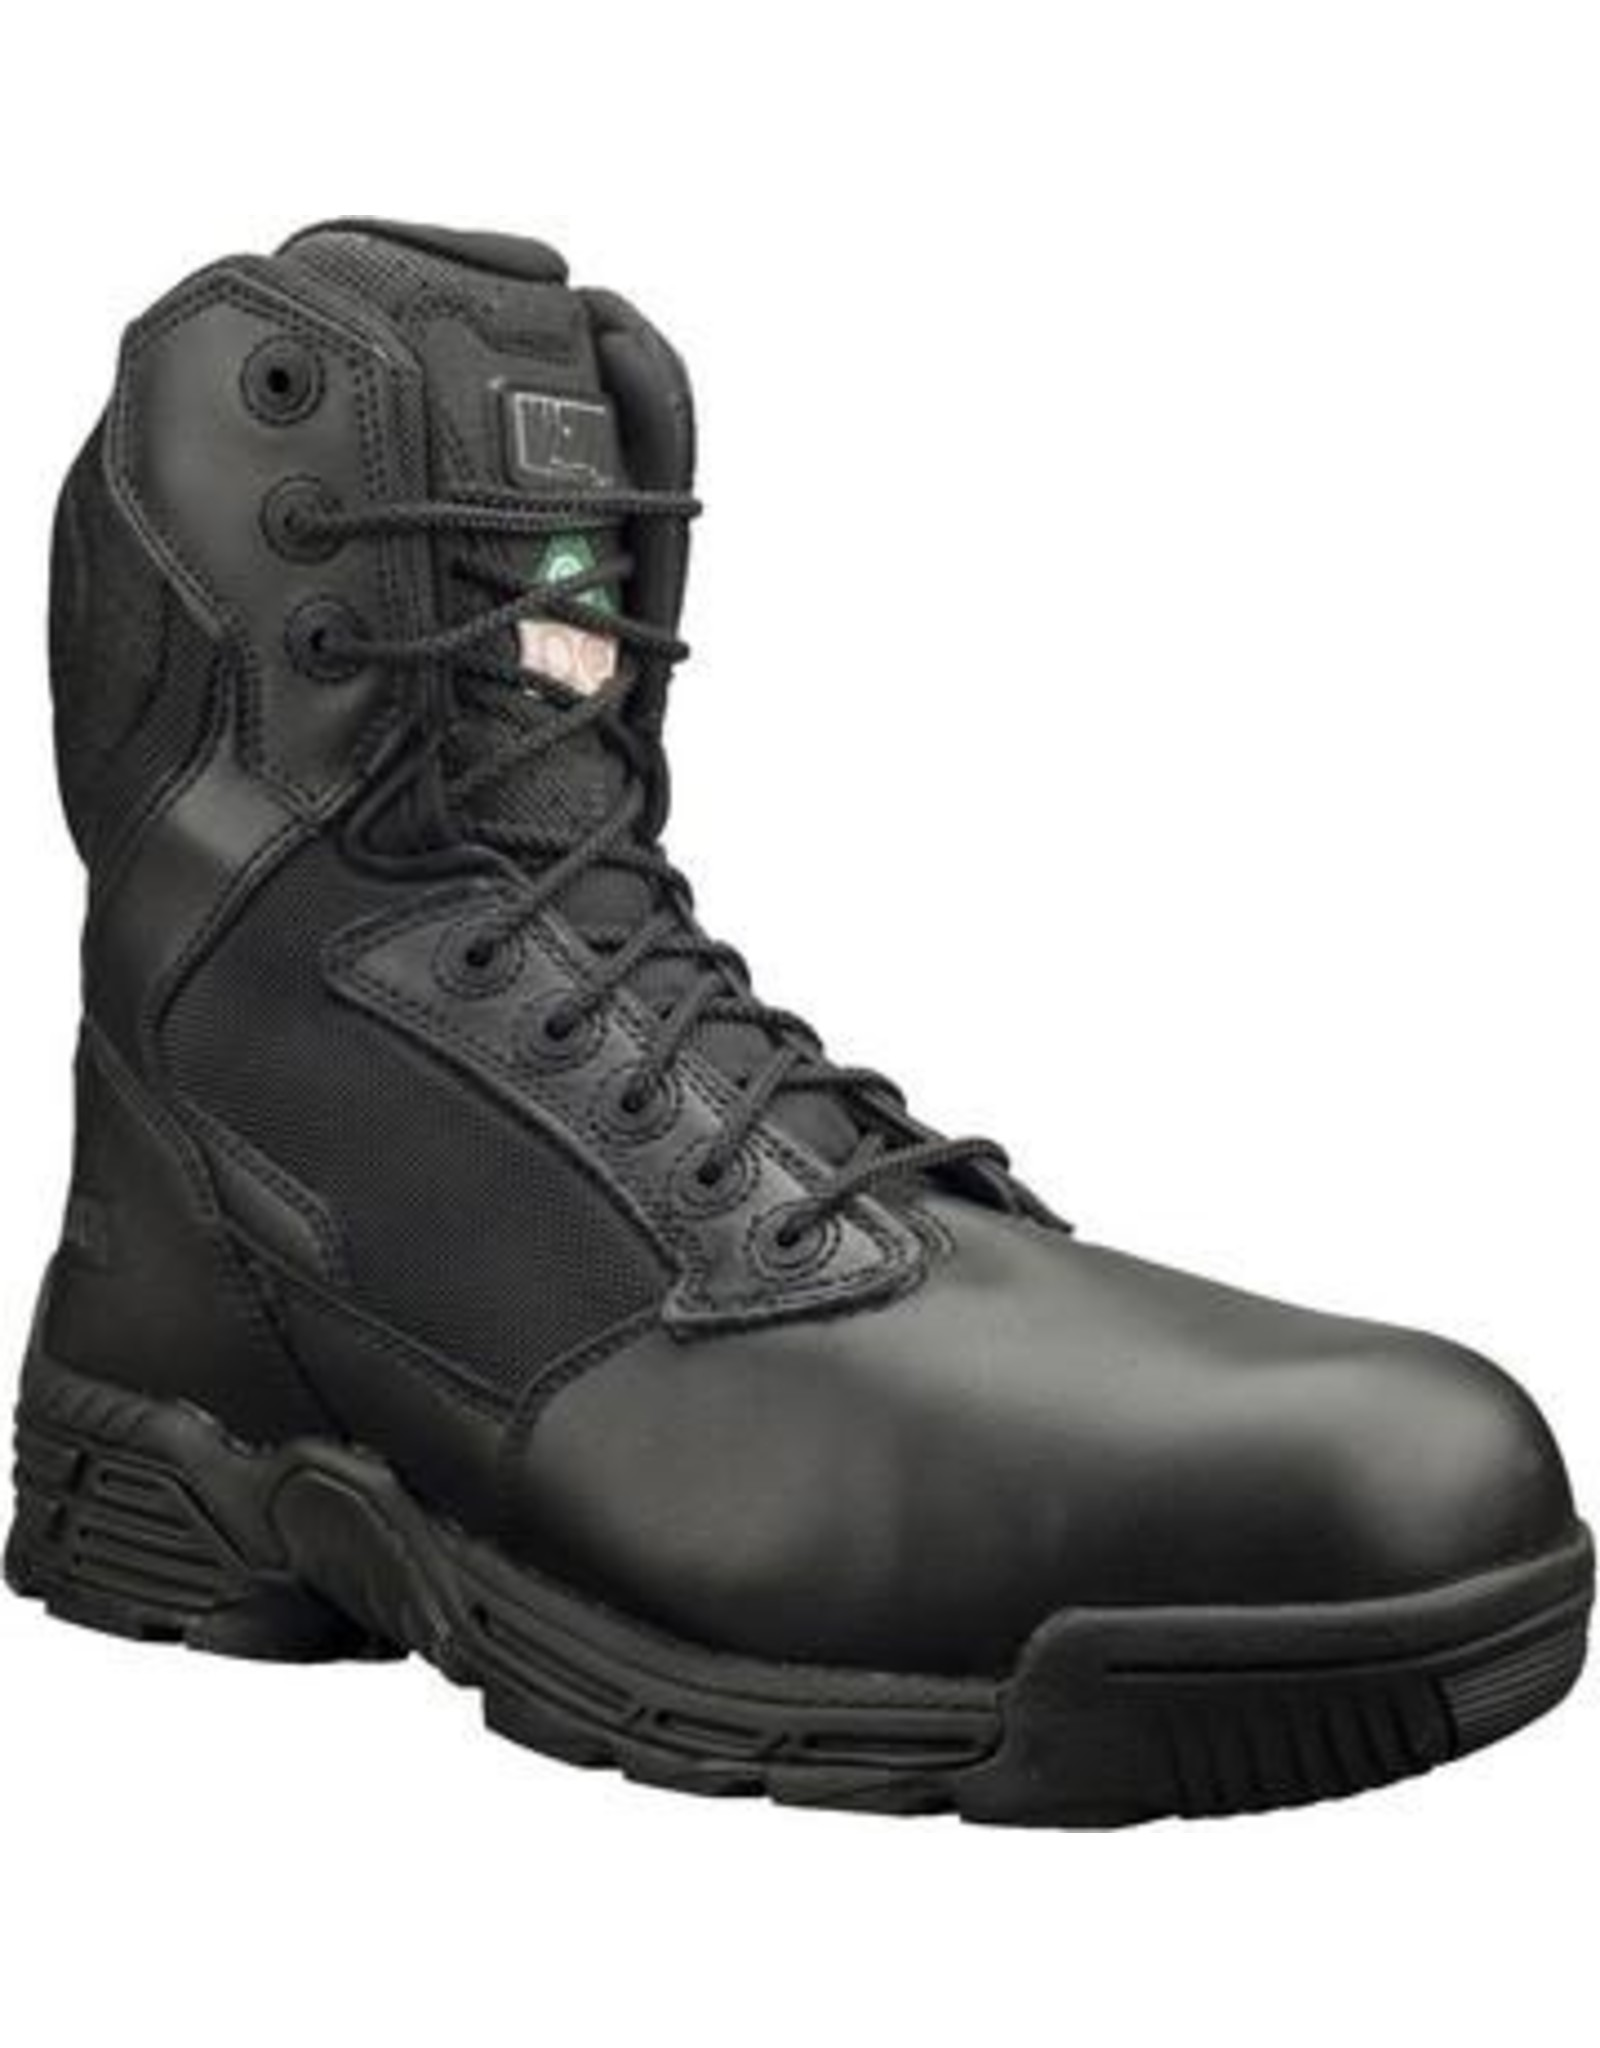 MAGNUM BOOTS MEN'S STEALTH FORCE 8.0 CT CP